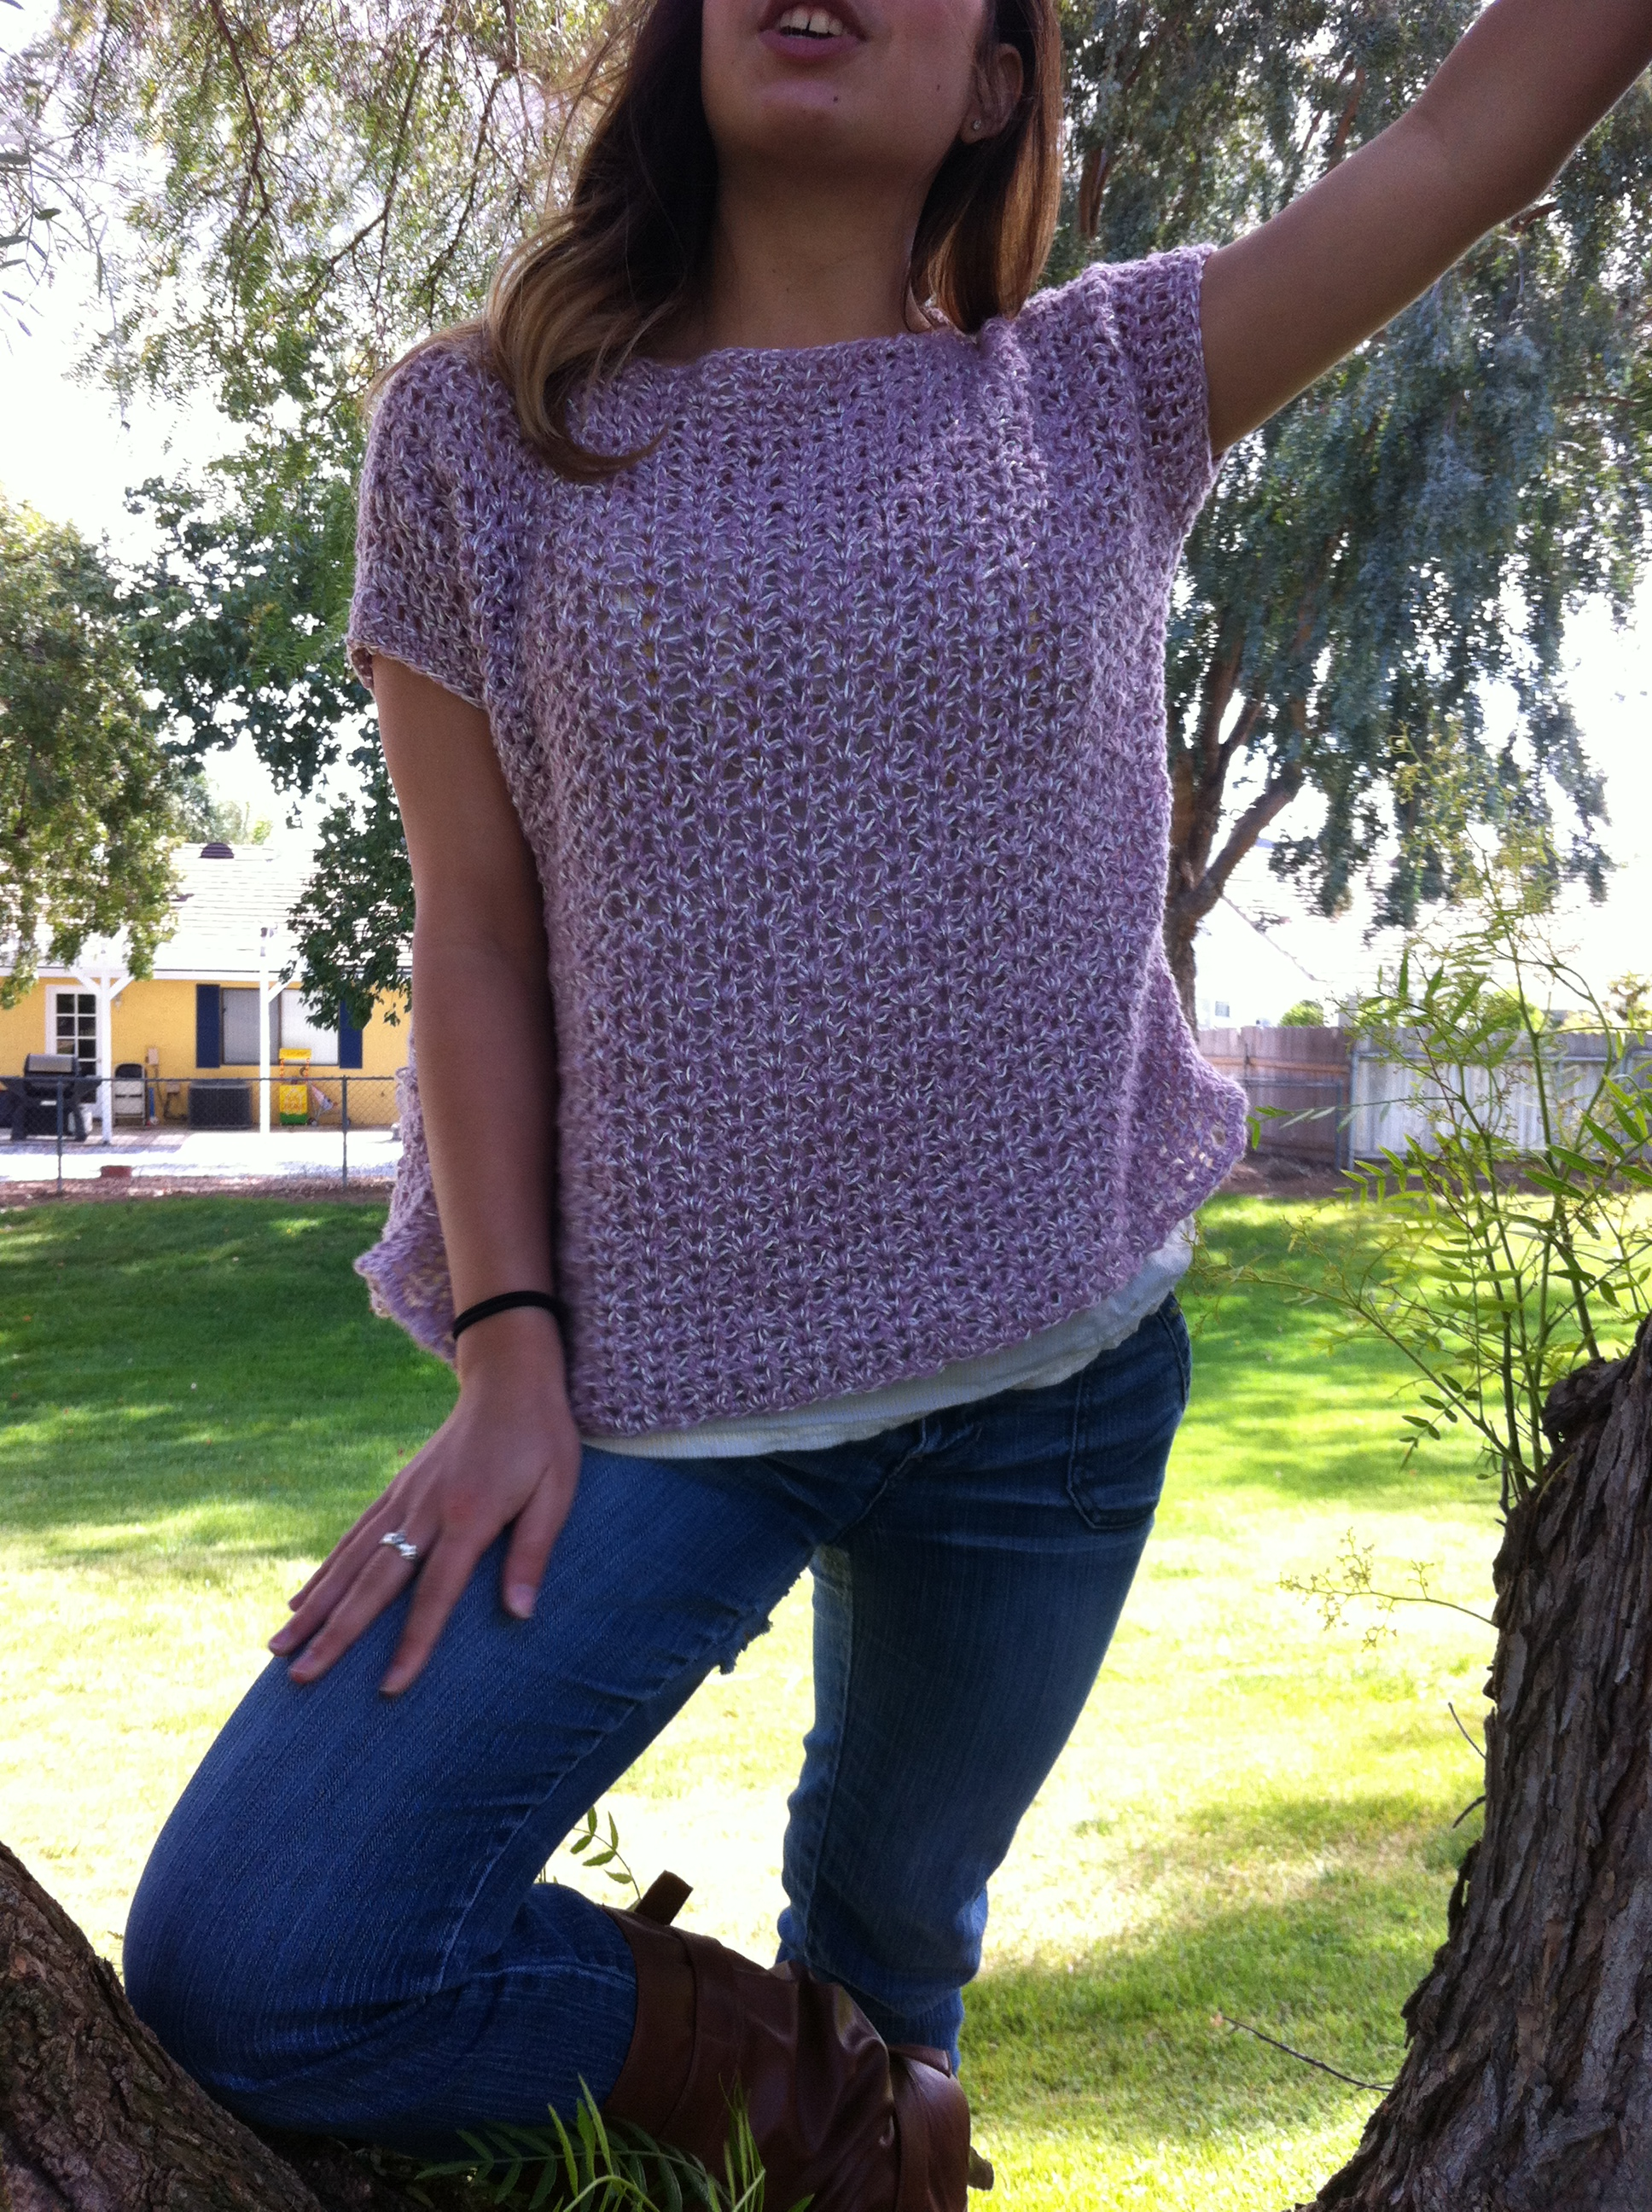 Beginner Crochet Top Patterns Free : CROCHET PATTERN Oversized Top/Sweater Easy/Beginner by ...